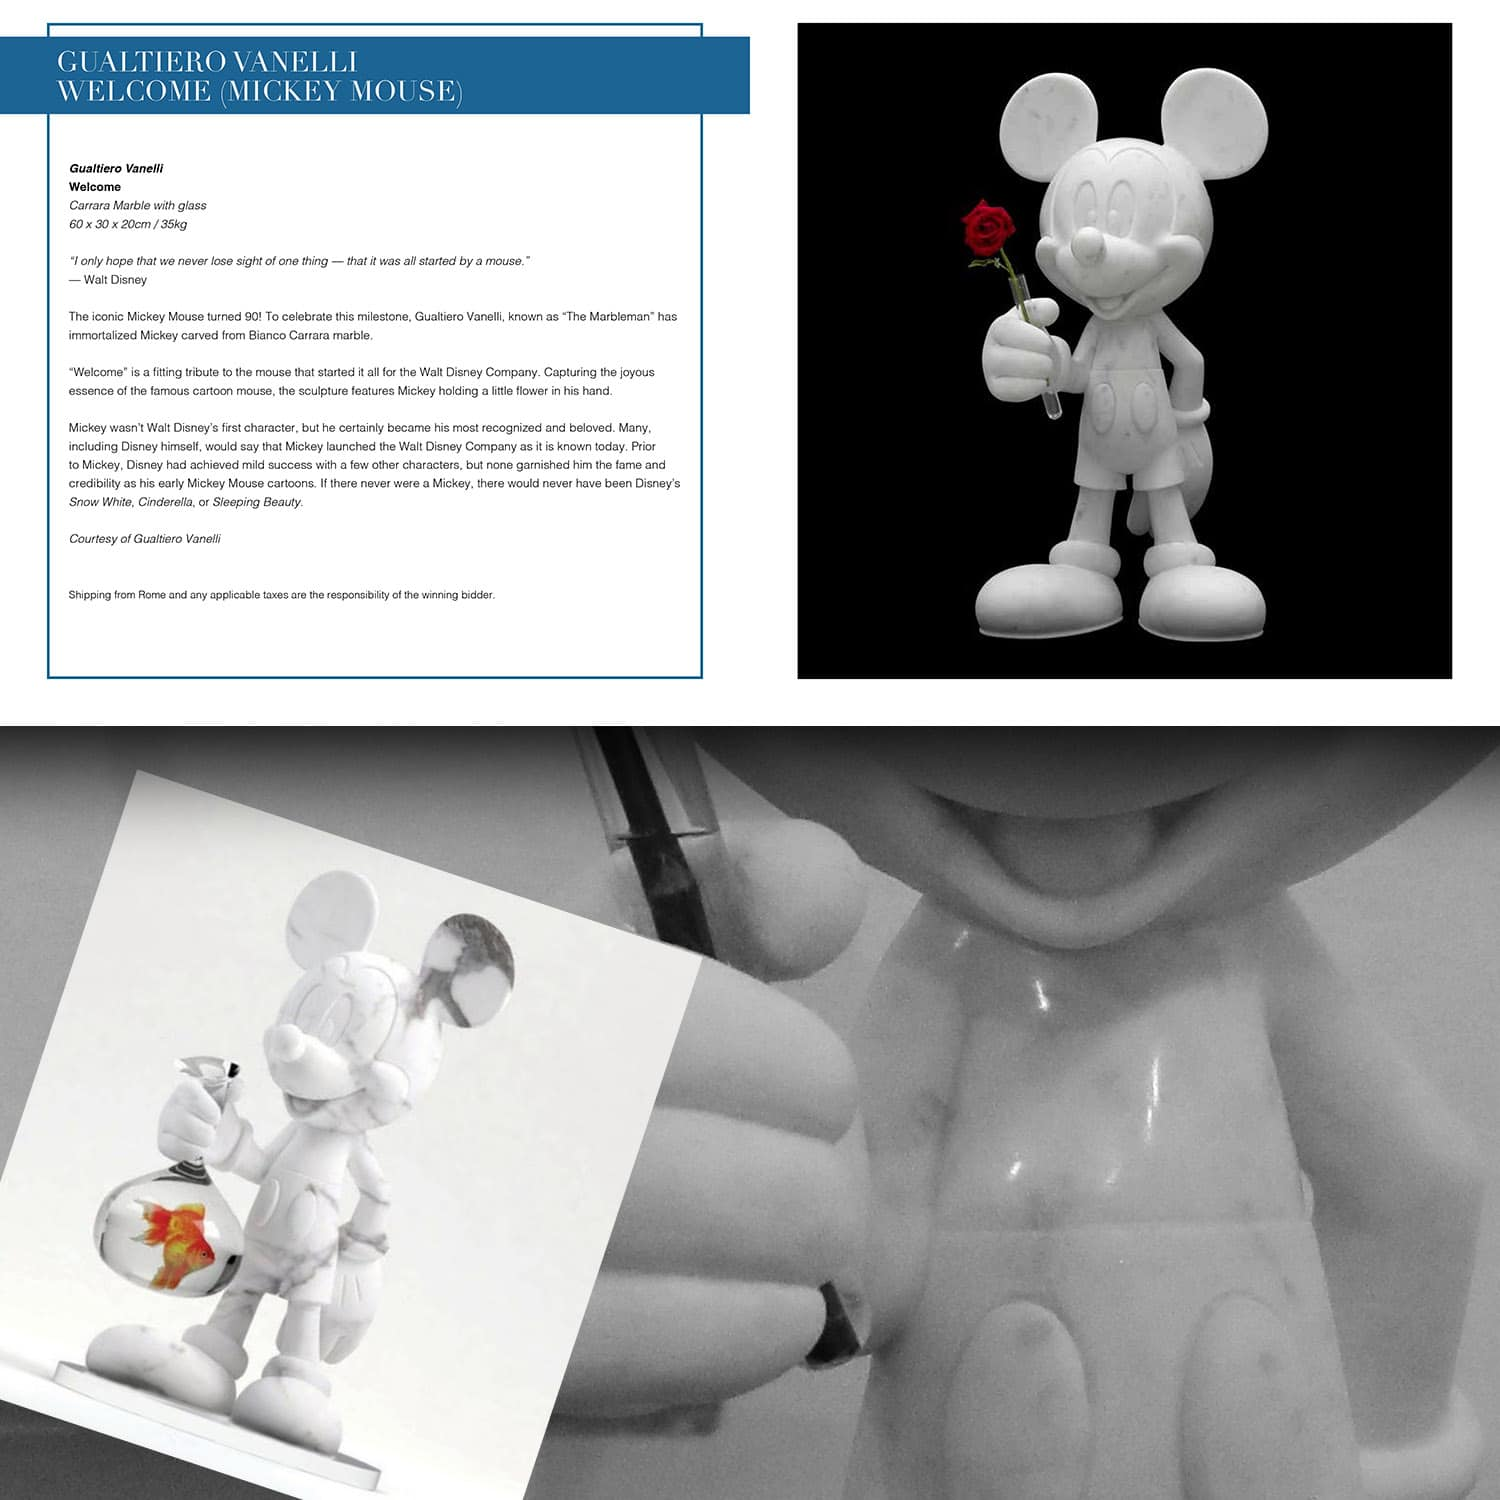 Gualtiero Vanelli Mickey Mouse for Unicef auction, Capri July 31, 2021 by RUNWAY MAGAZINE